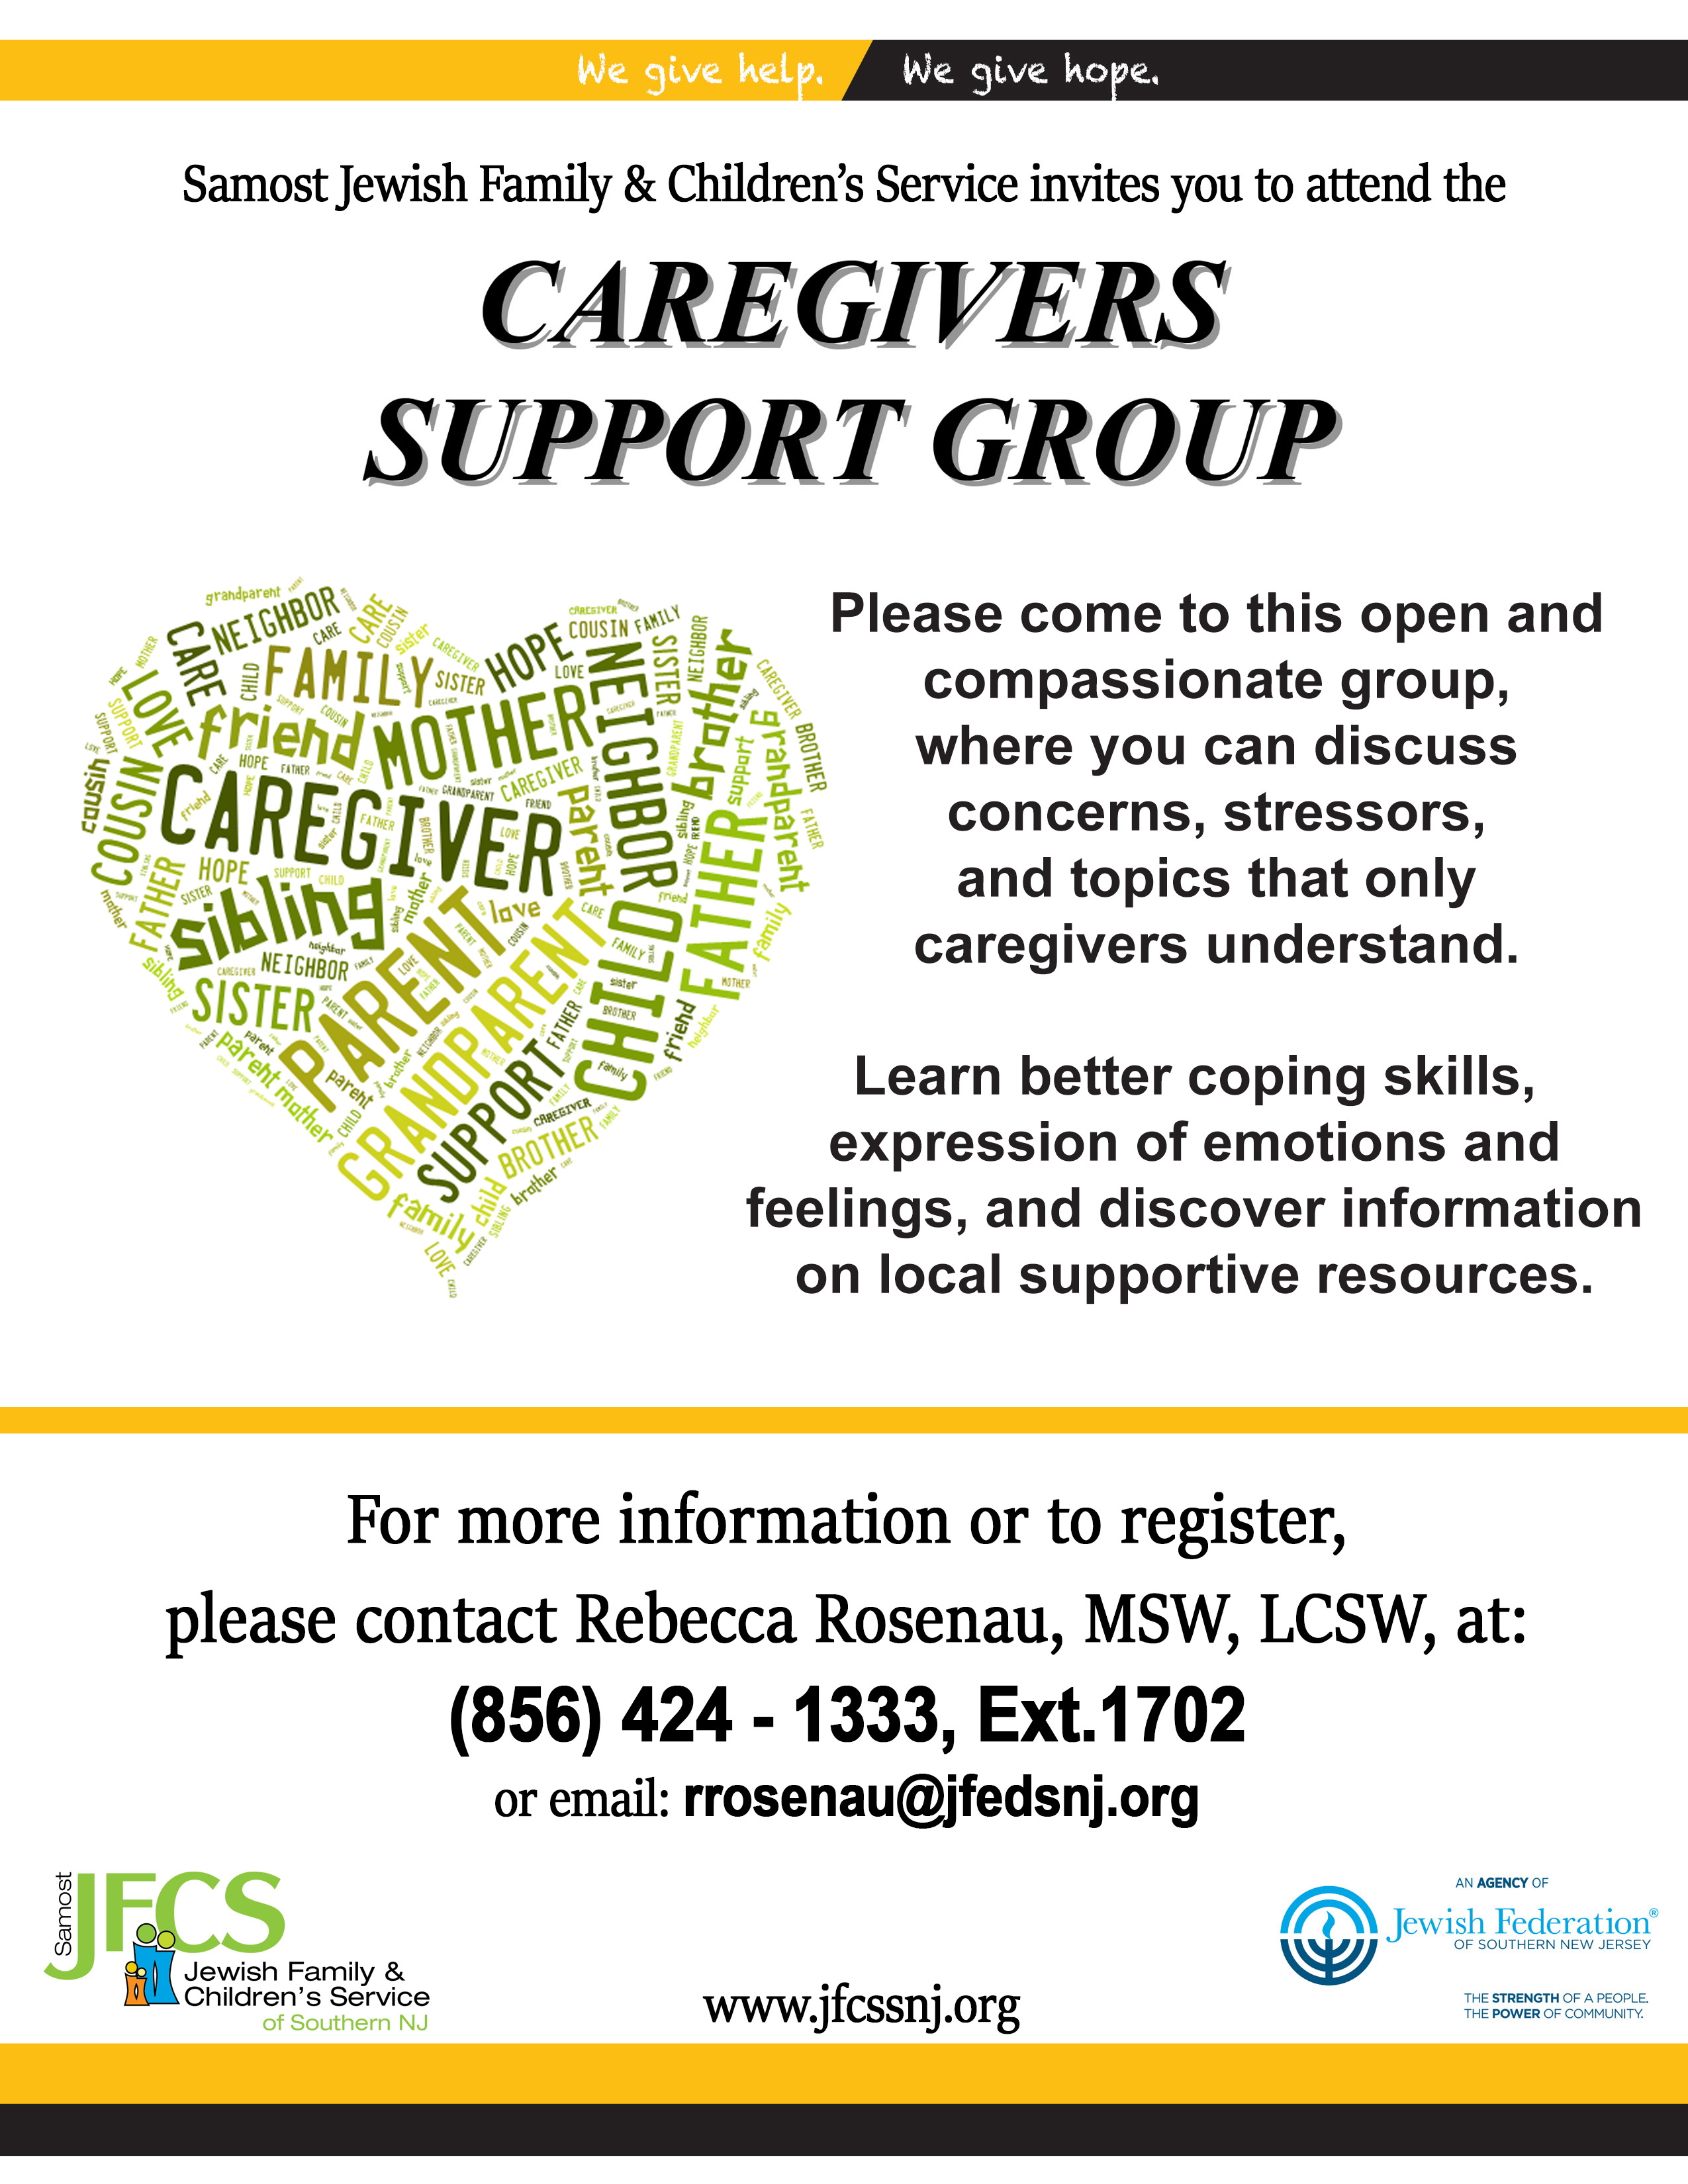 Support group for caregivers